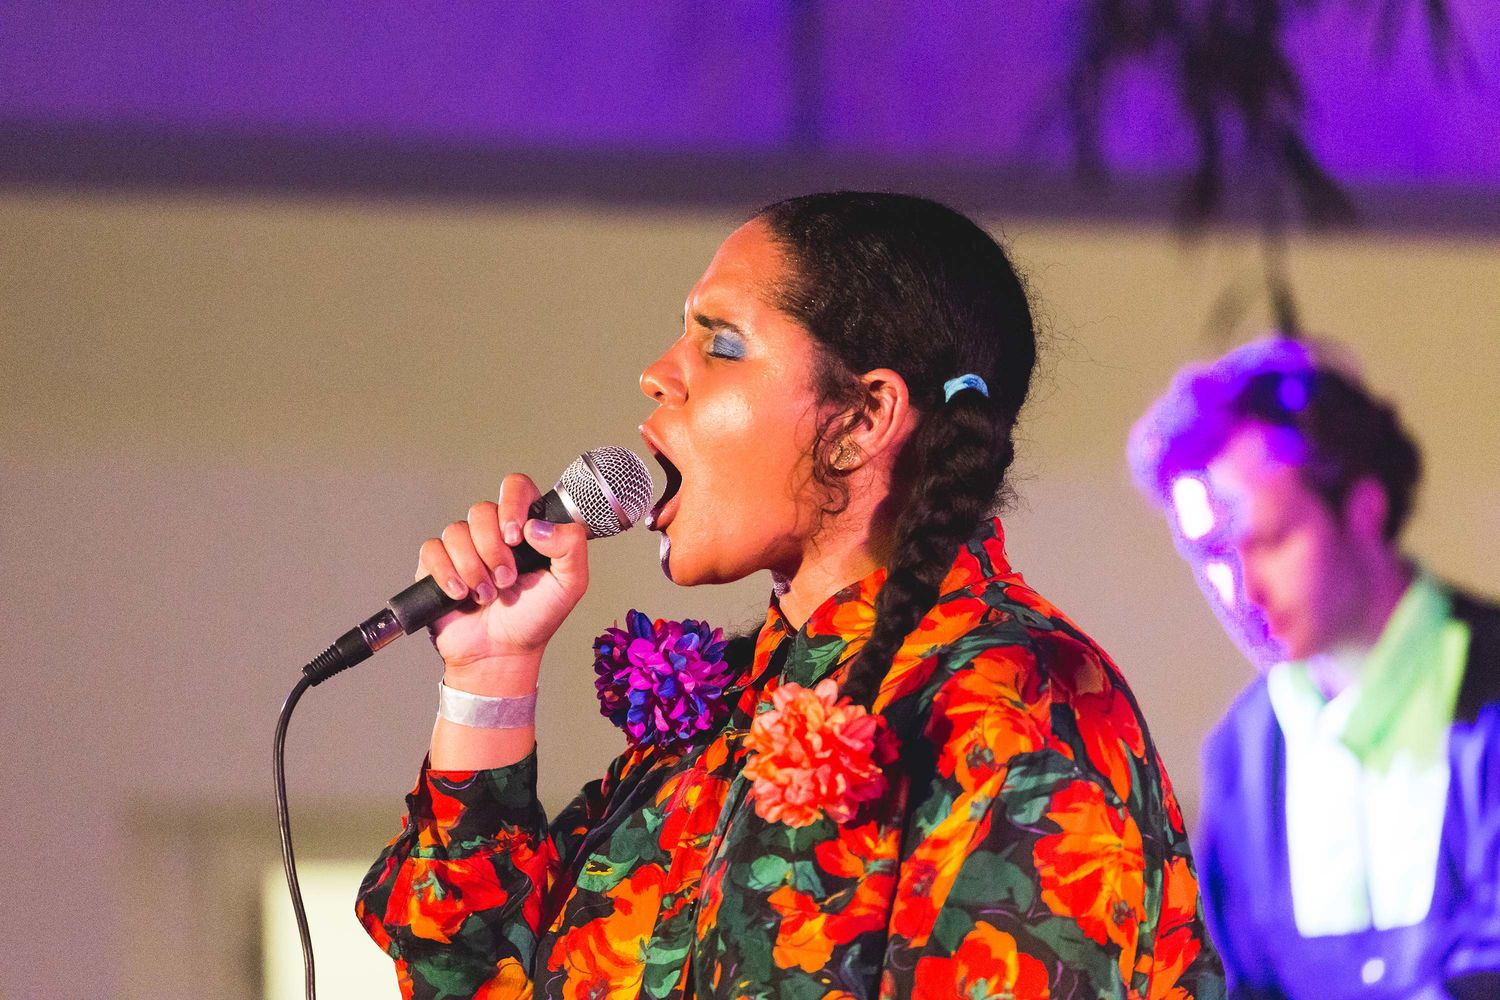 Lido Pimienta performs at ¡Pa'rriba!. Hammer Museum, Los Angeles, September 22, 2017